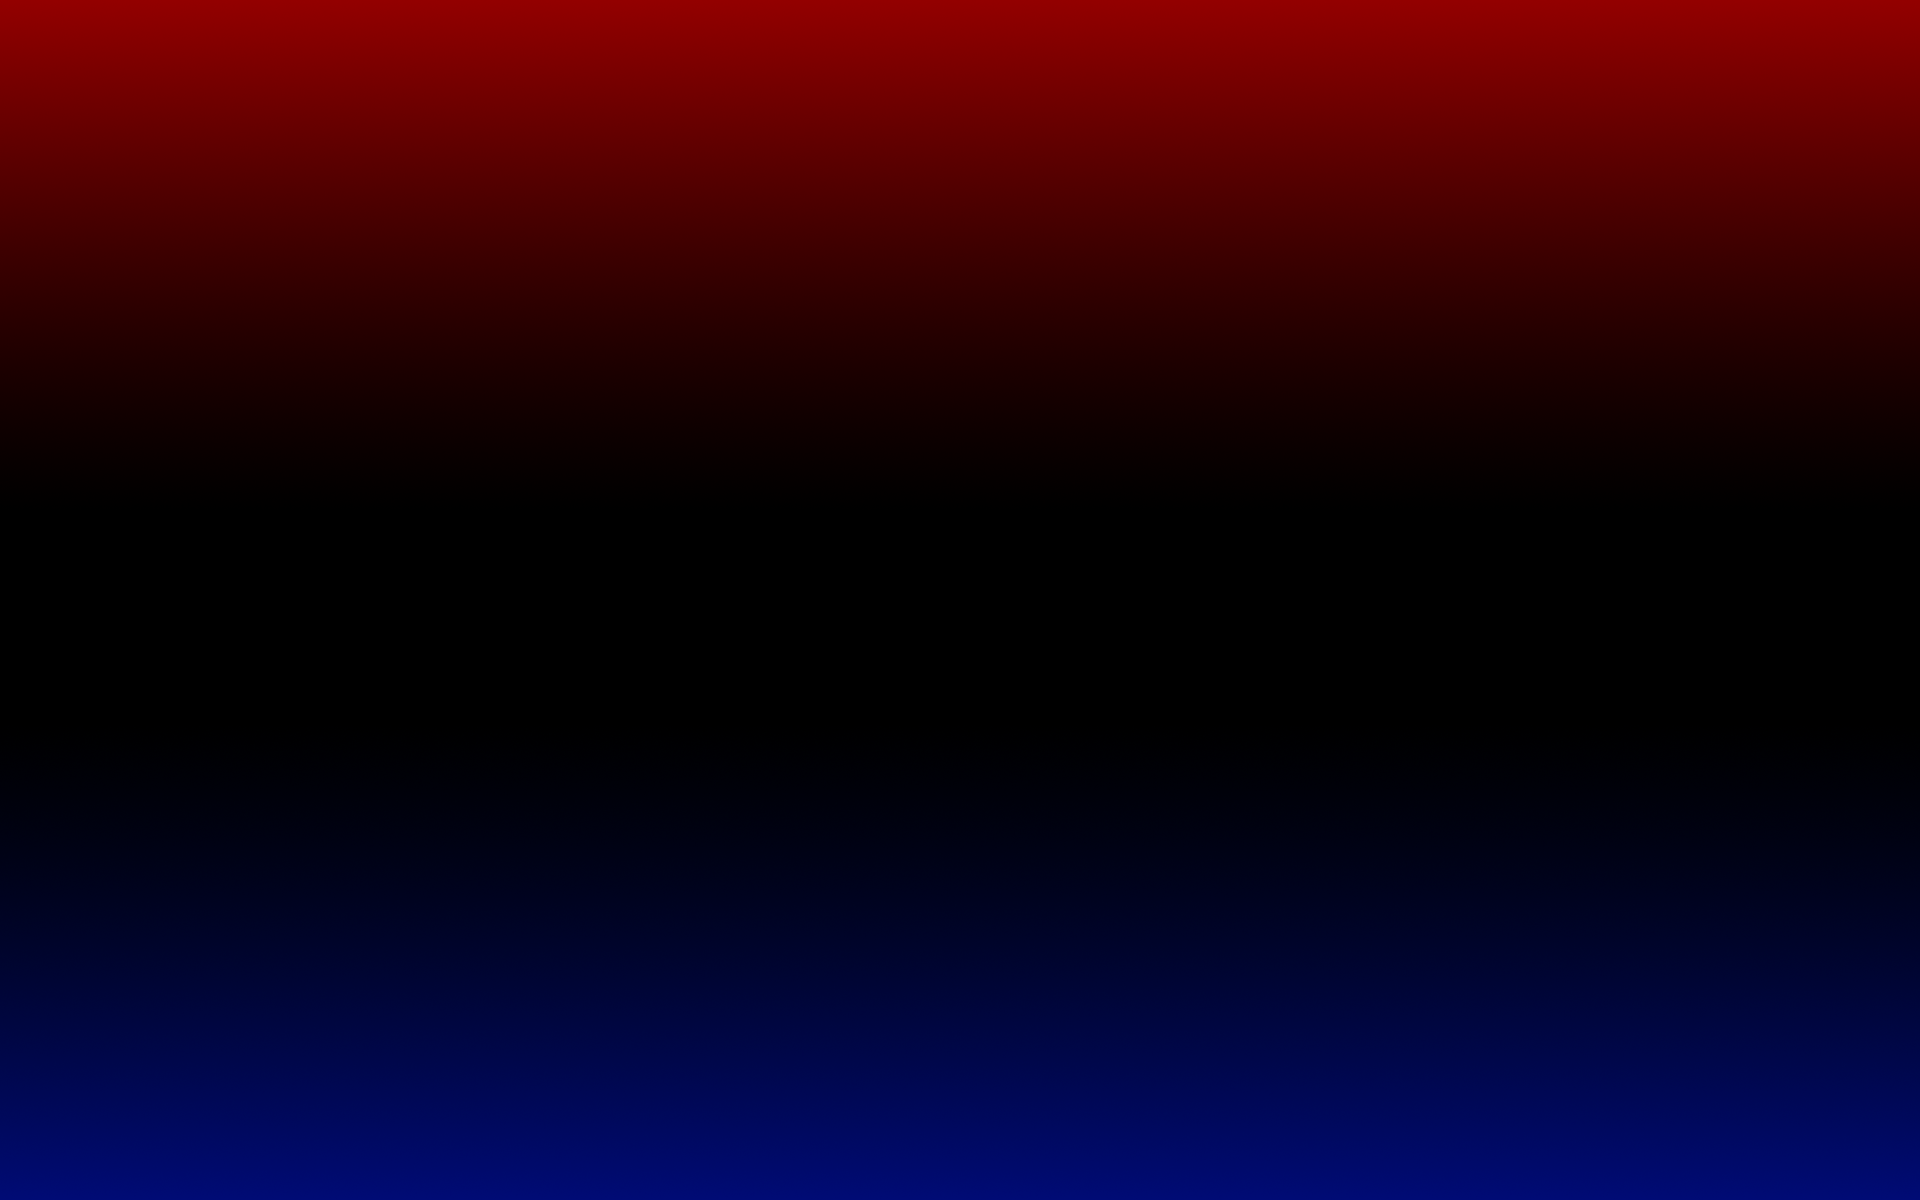 red blue background wallpaper 64221